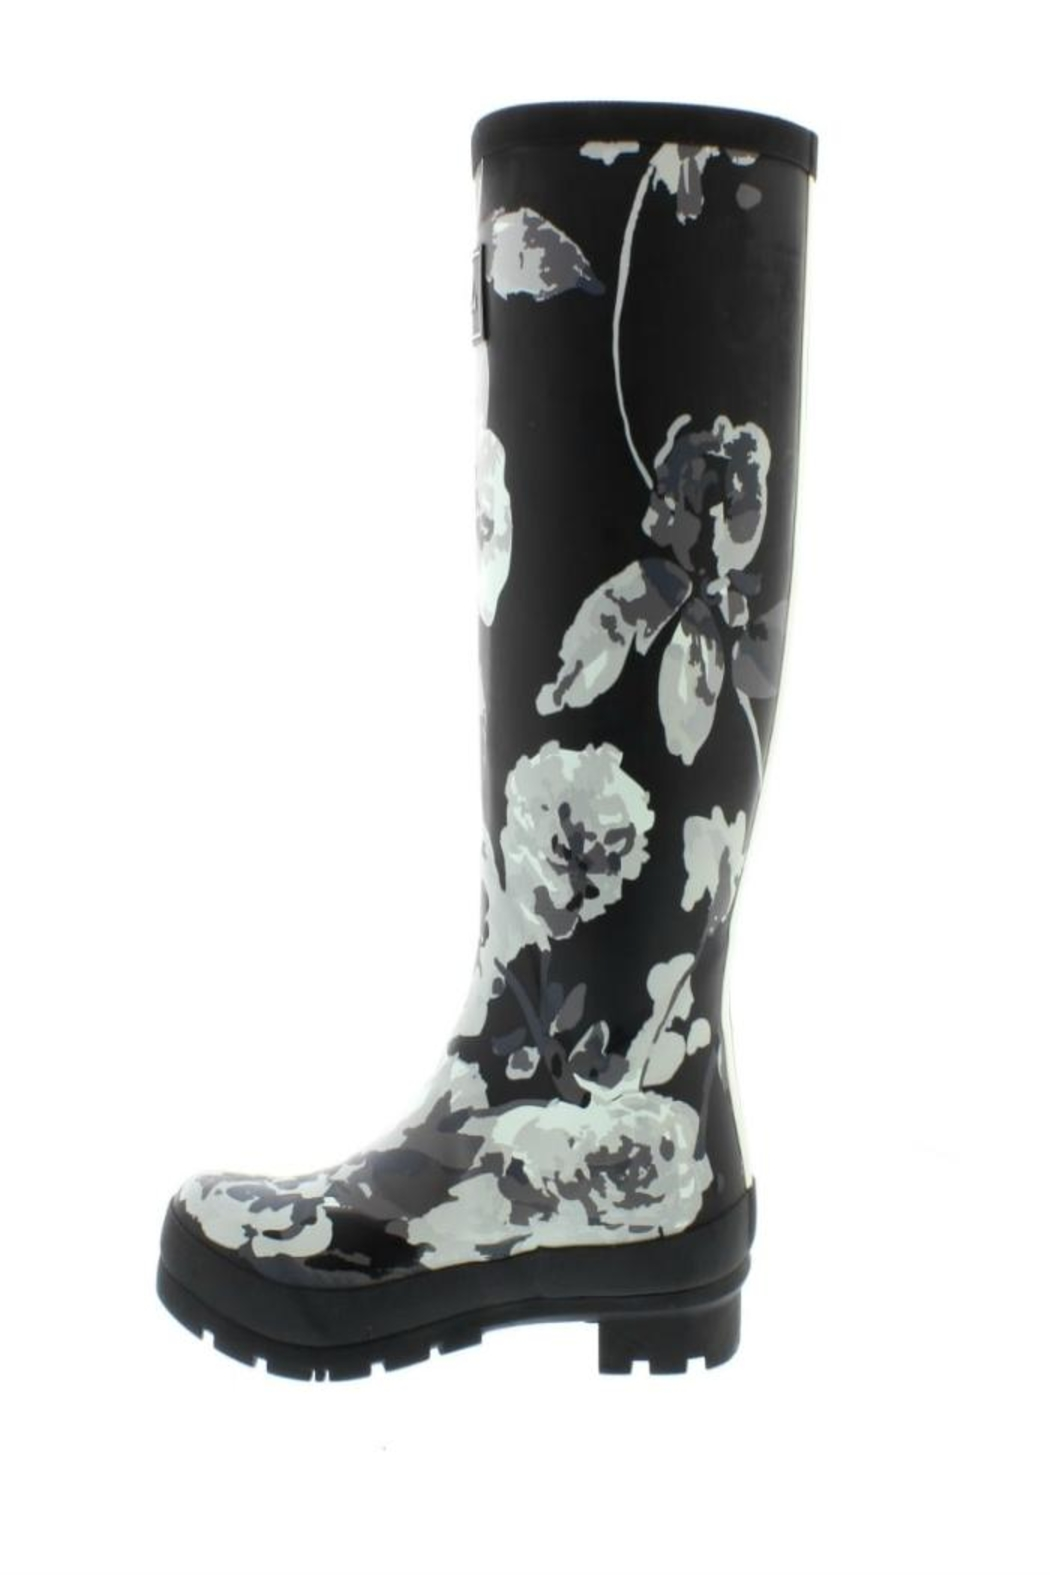 Welly Print Boots